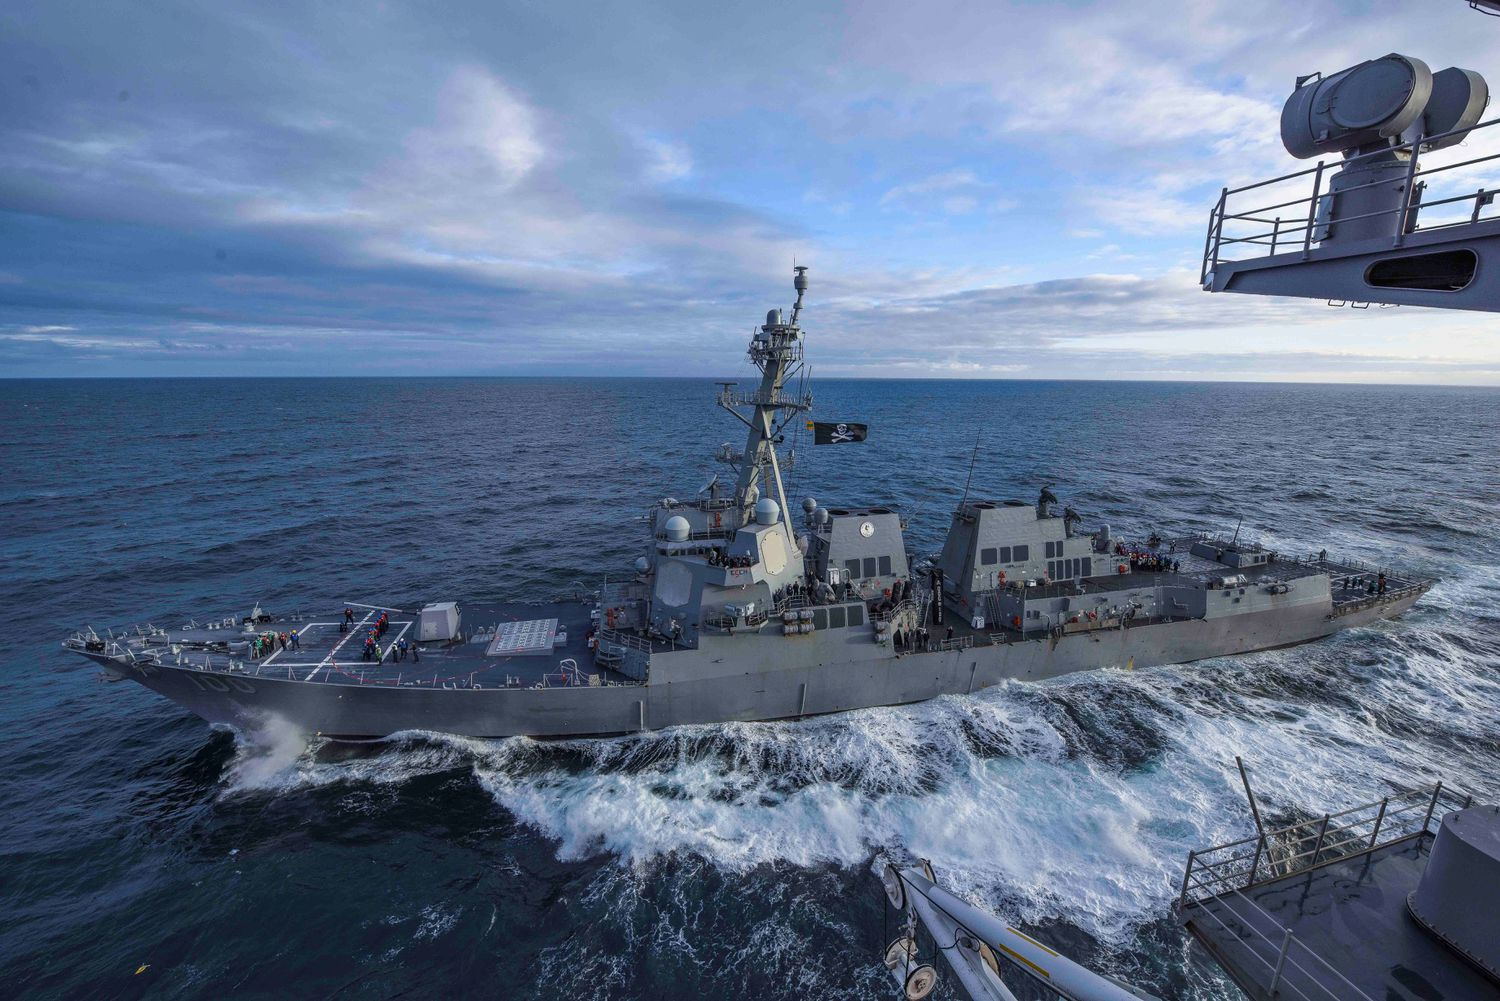 A second United States Navy ship records 47 cases of coronavirus